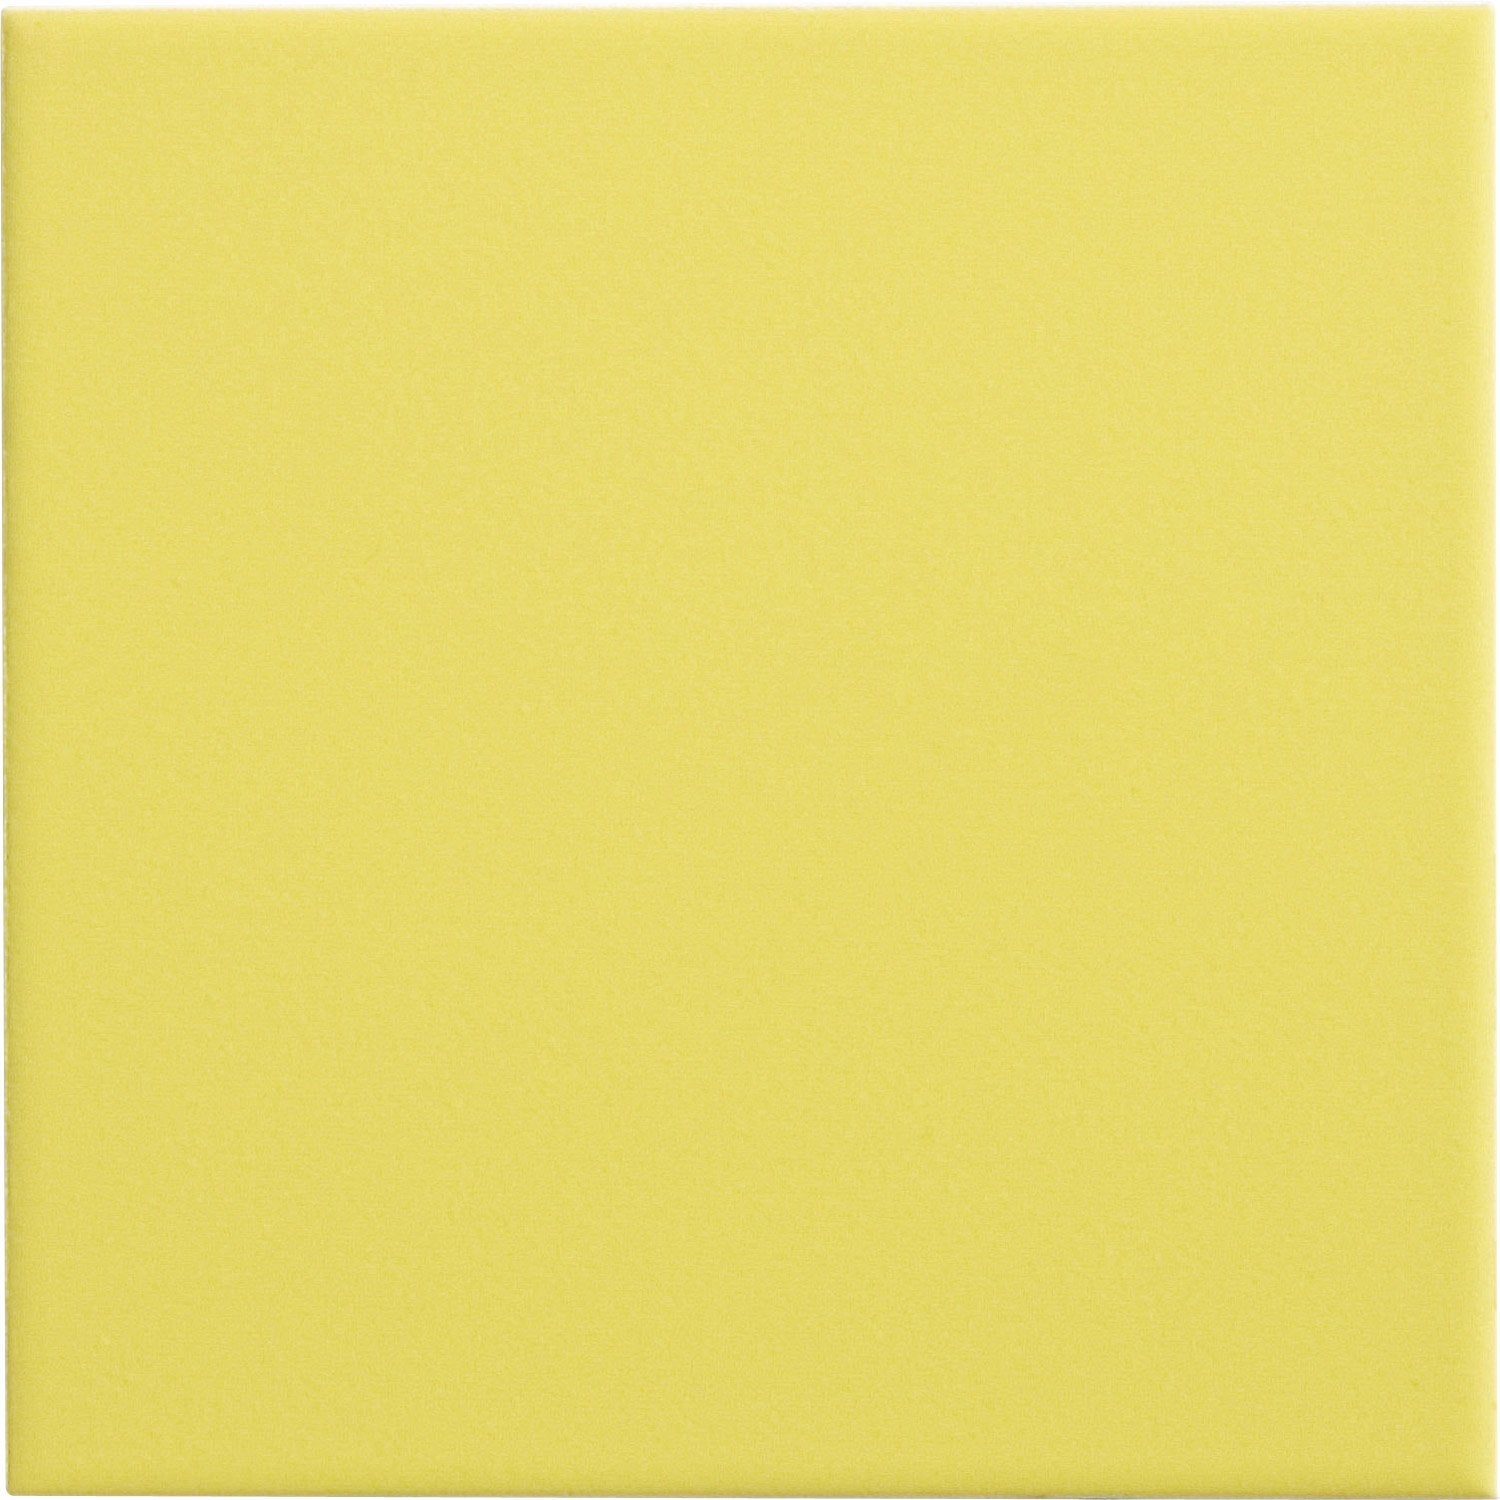 Carrelage jaune 15x15 28 images relooker le carrelage for Carrelage jaune